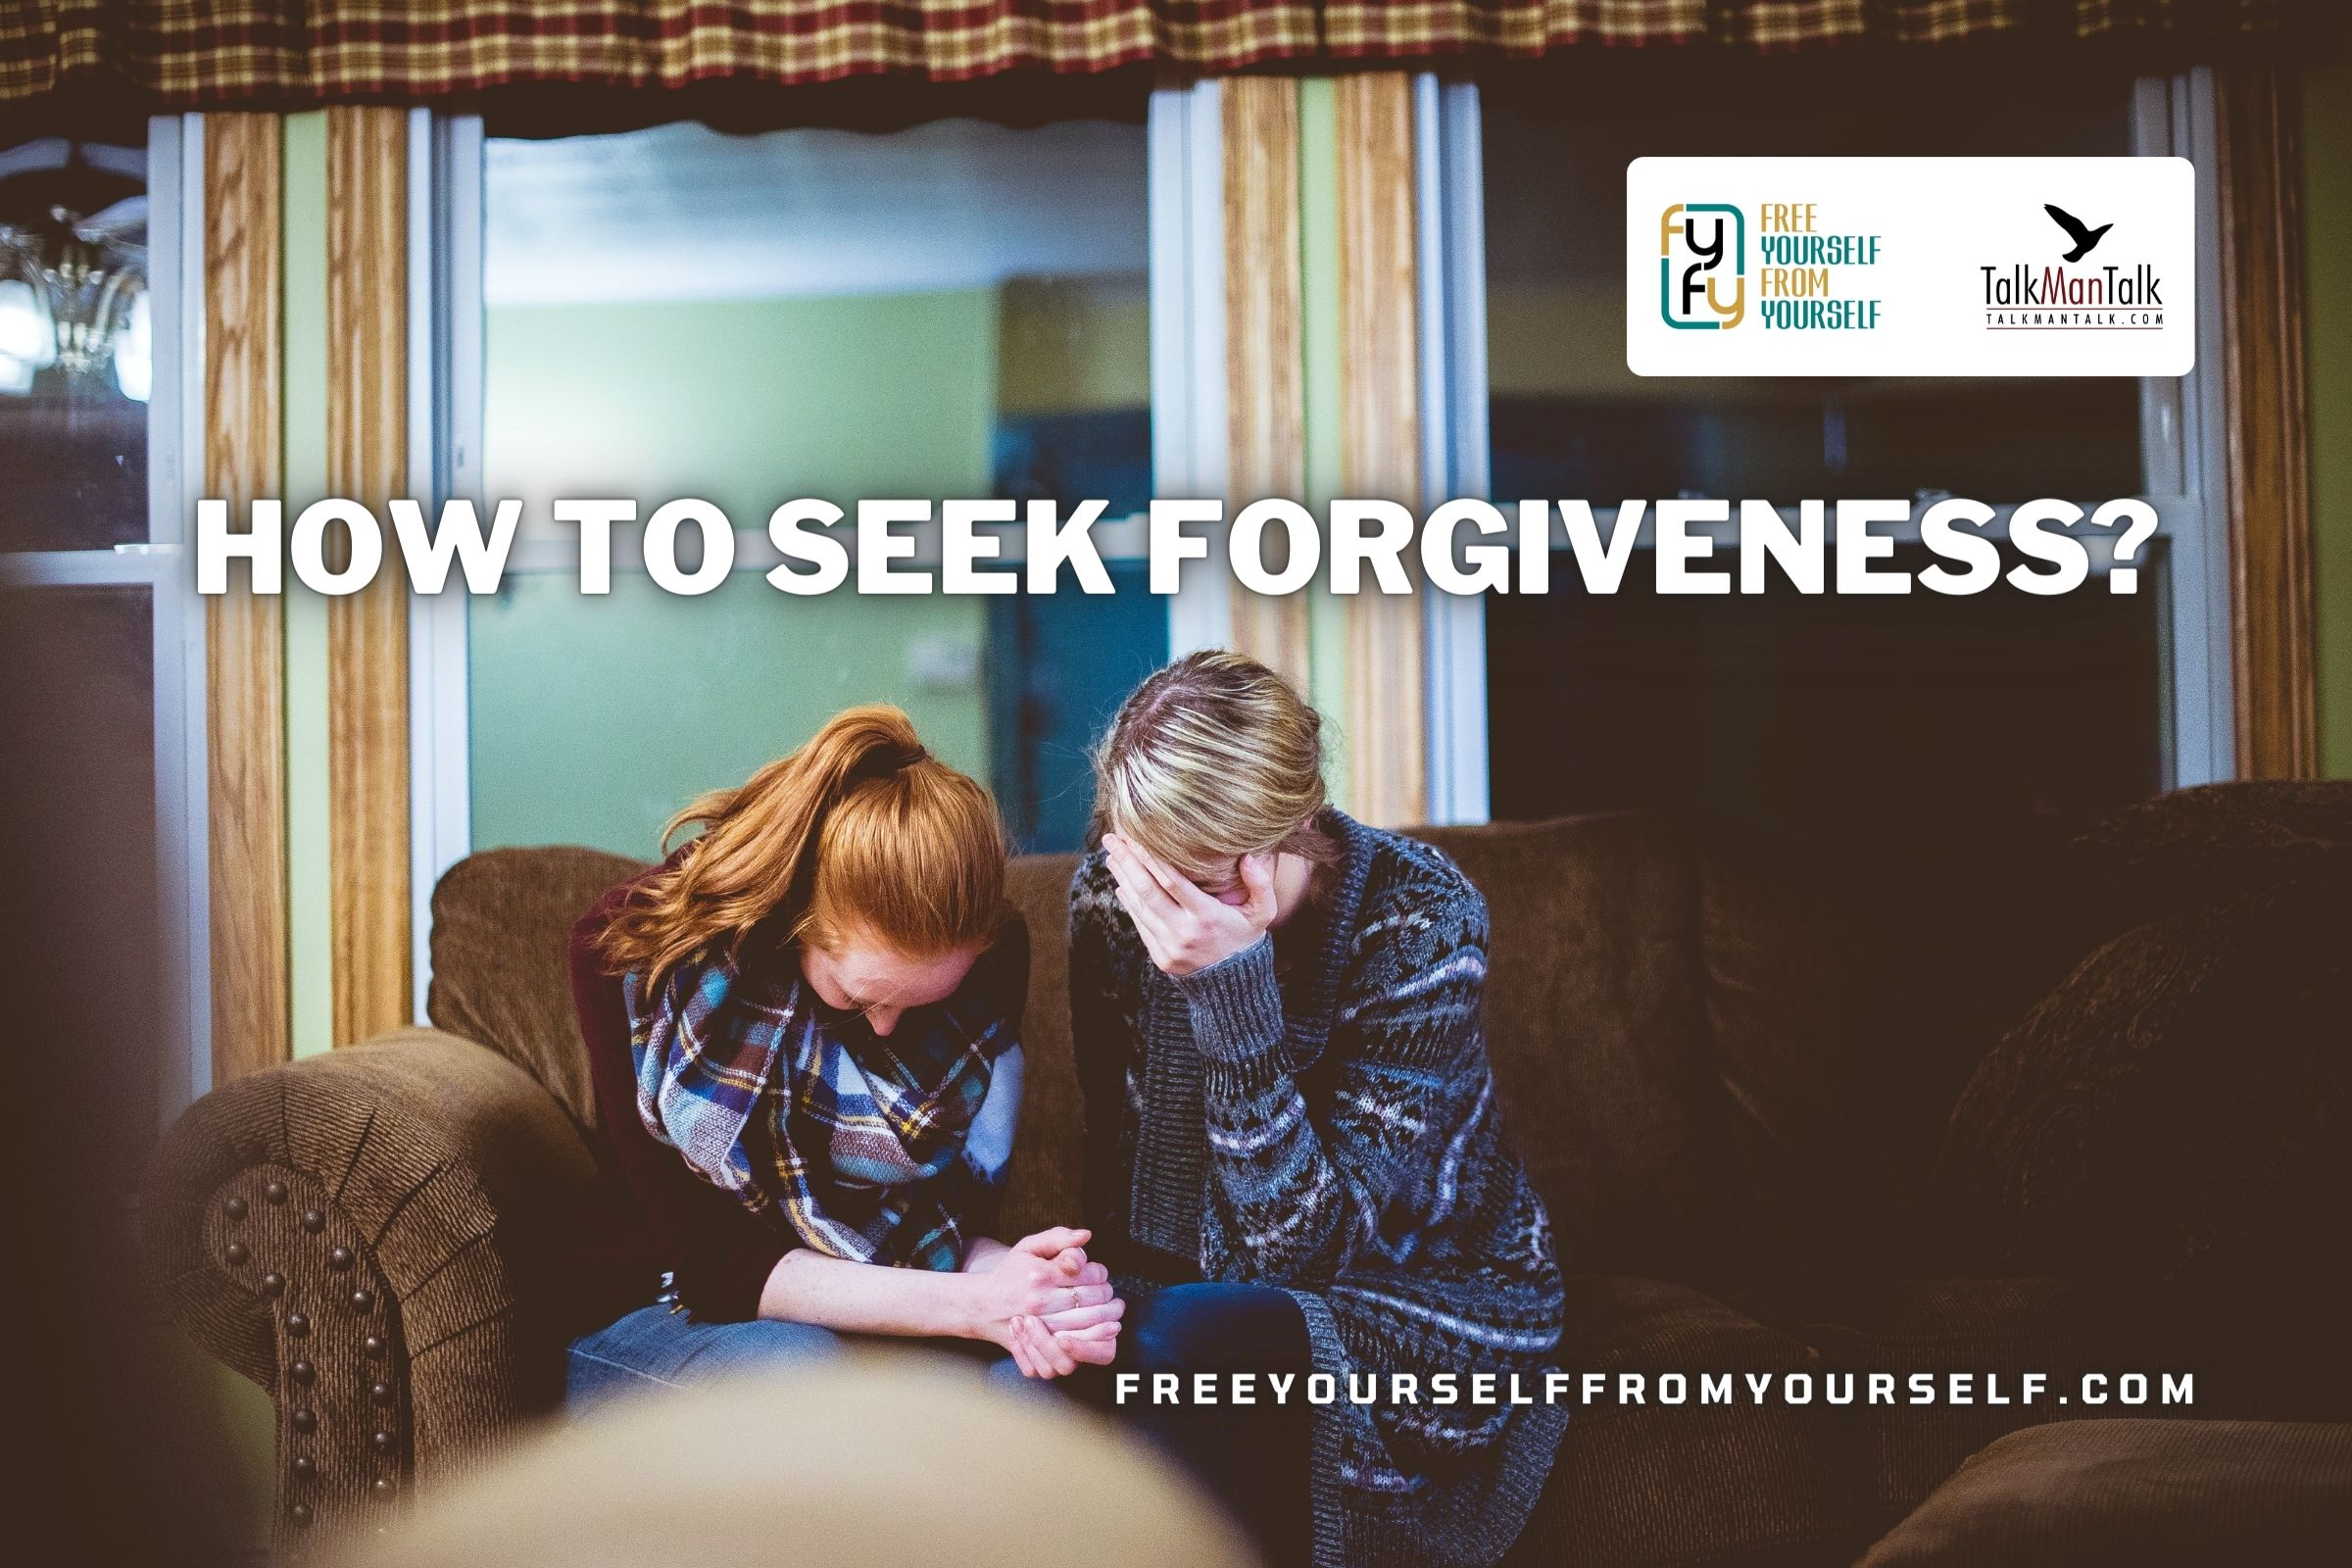 How to seek forgiveness from others